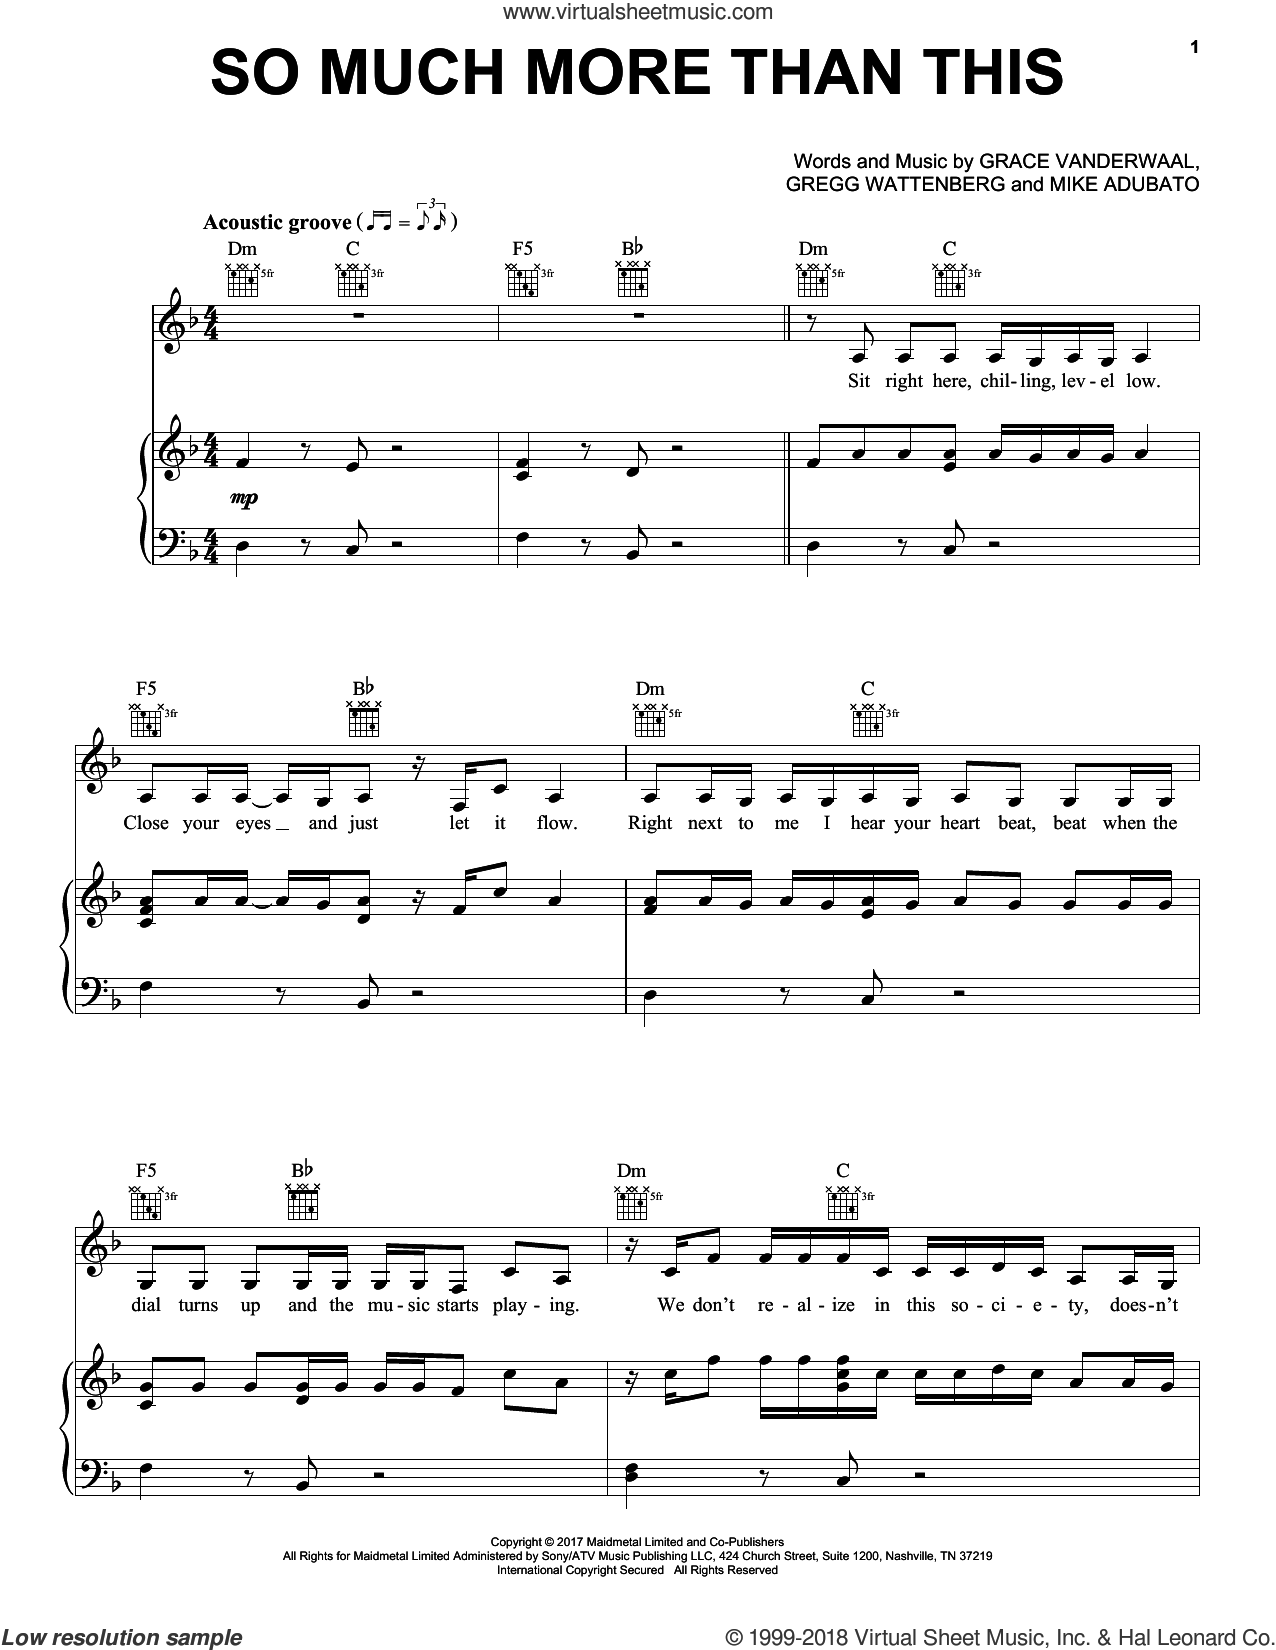 So Much More Than This sheet music for voice, piano or guitar by Grace VanderWaal, Gregg Wattenberg and Mike Adubato, intermediate skill level